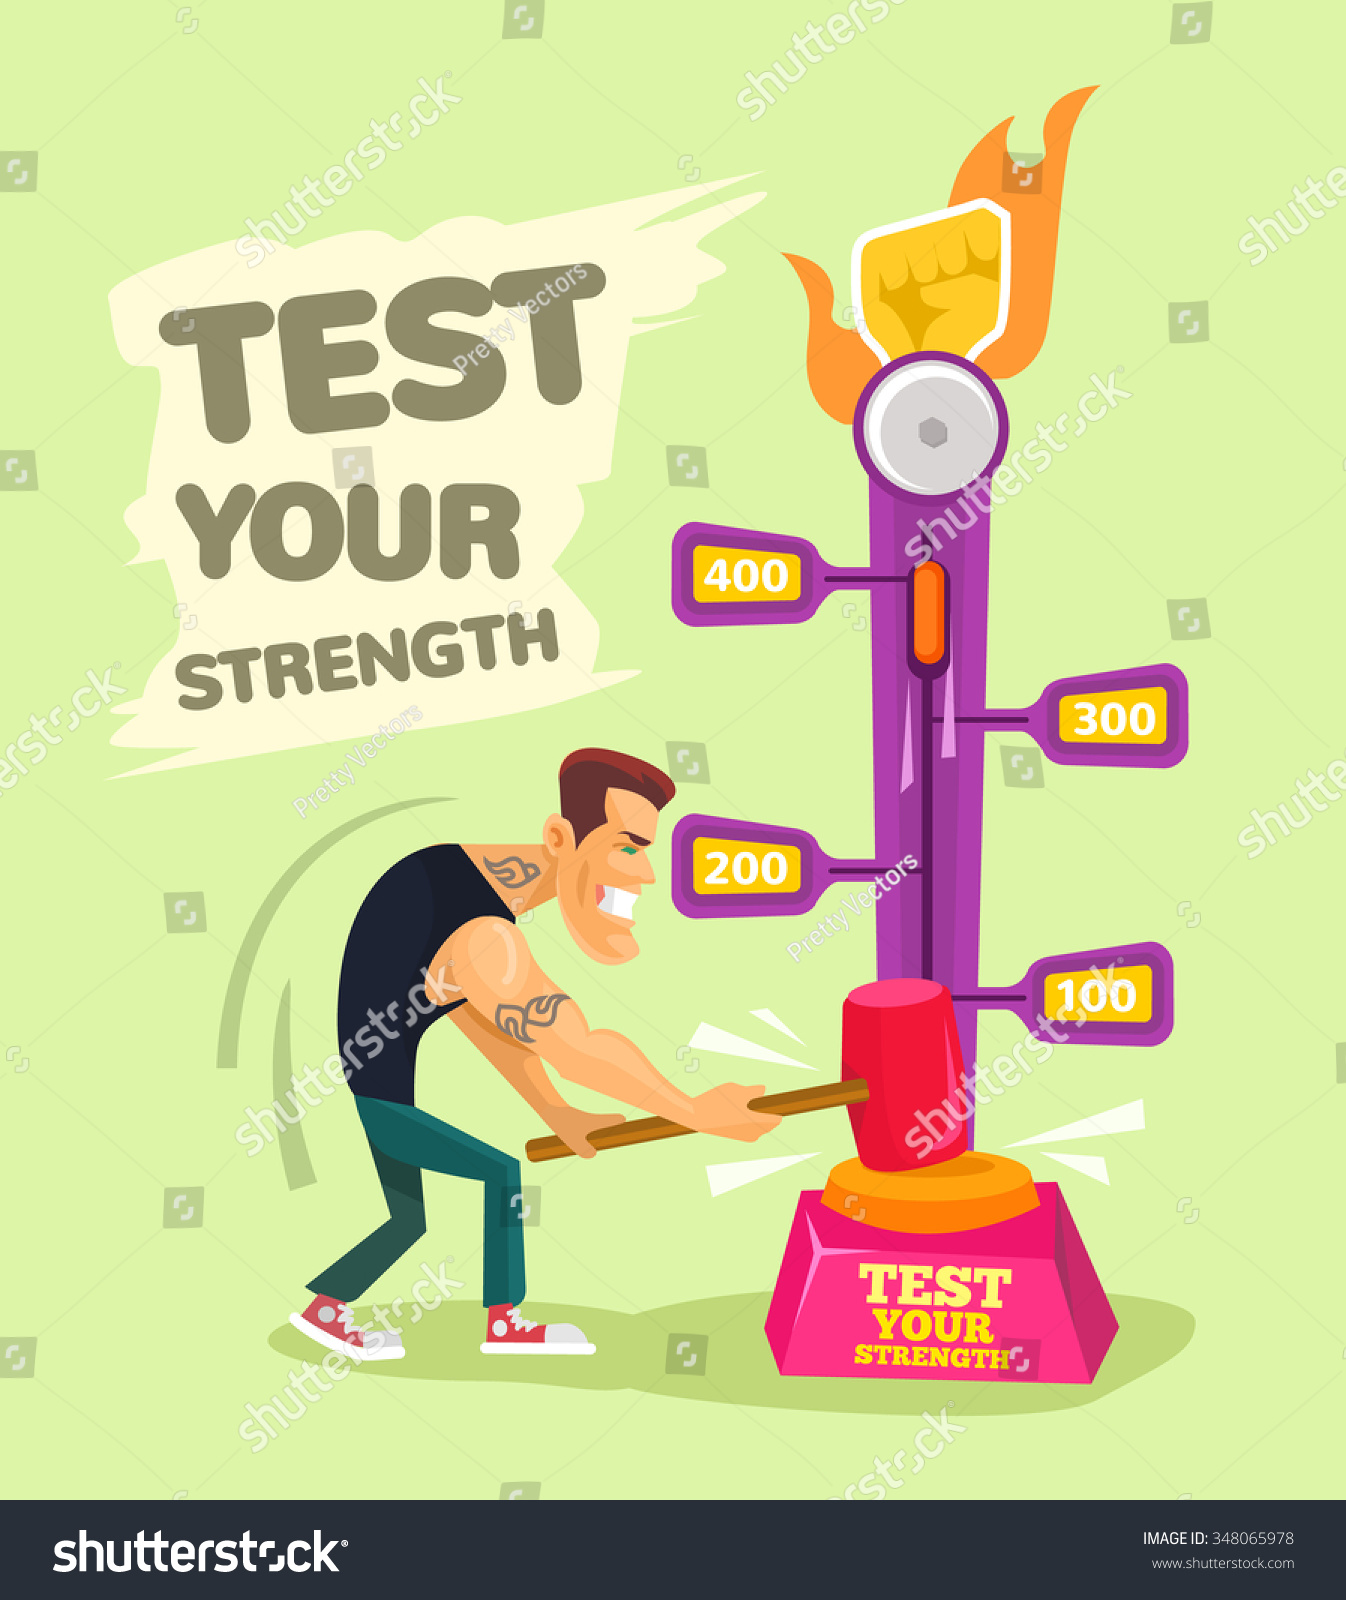 test your strength vector flat illustration stock vector  test your strength vector flat illustration